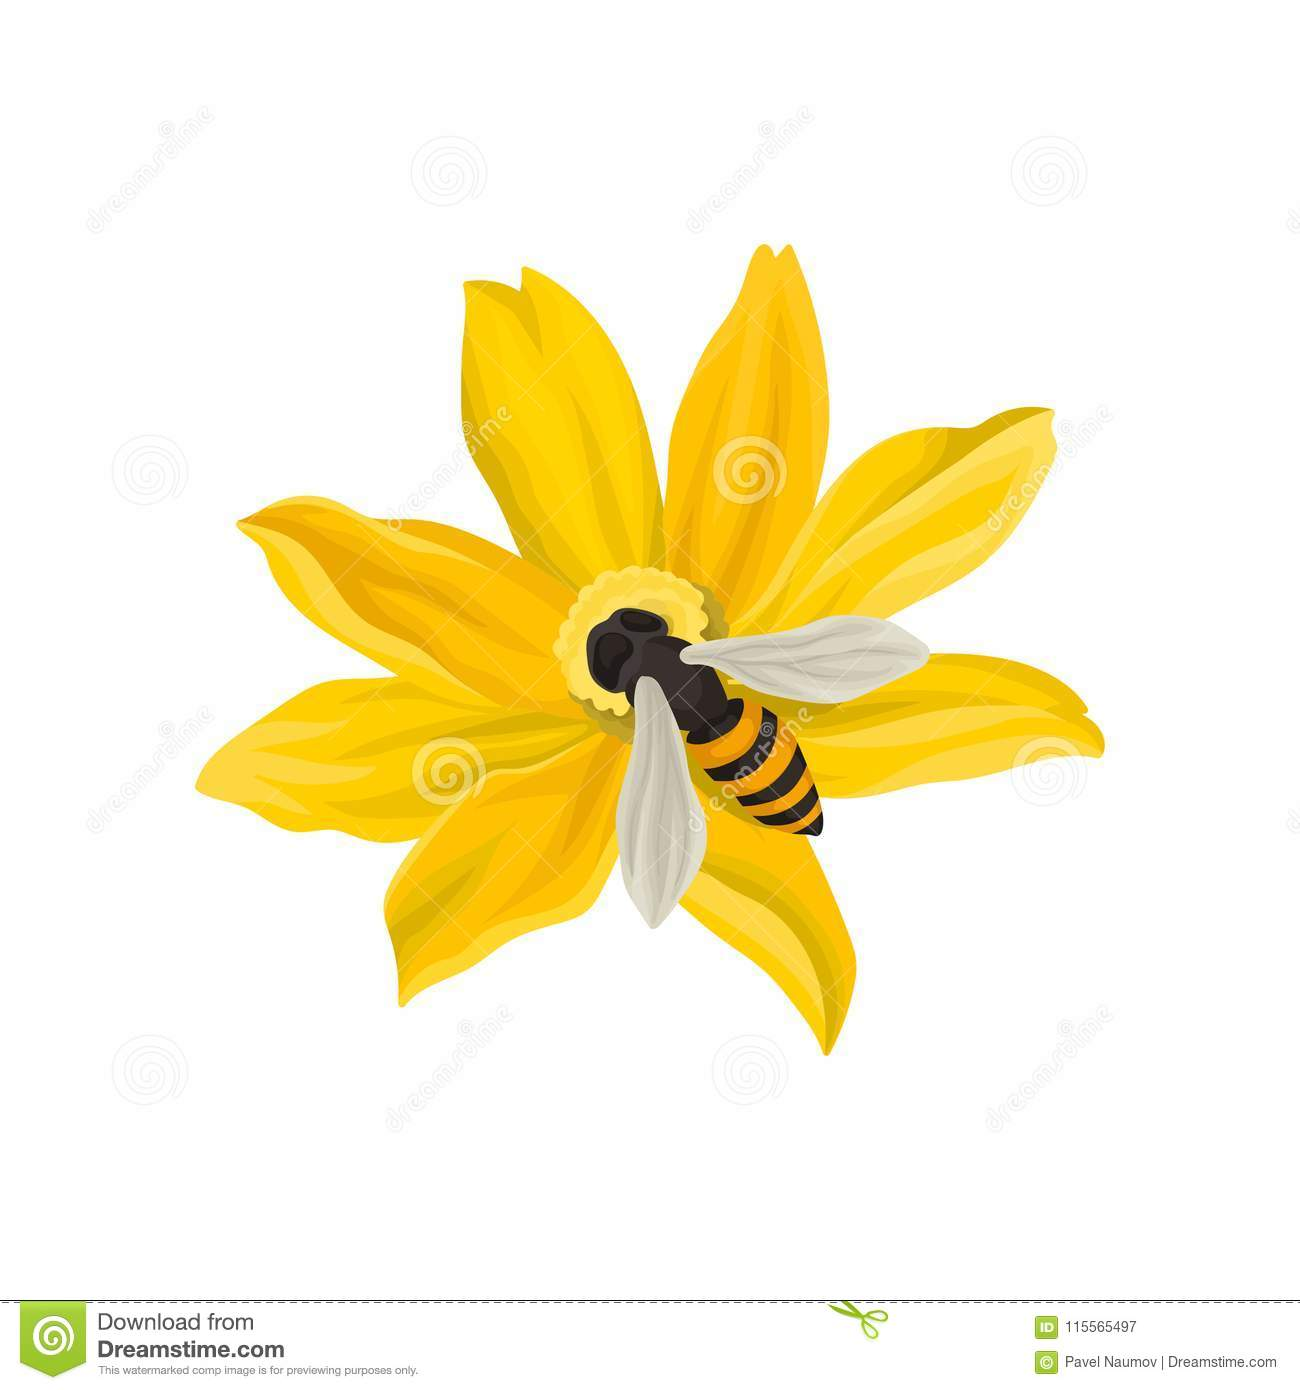 Bee Pollinating Beautiful Flower Flying Insect With Black And